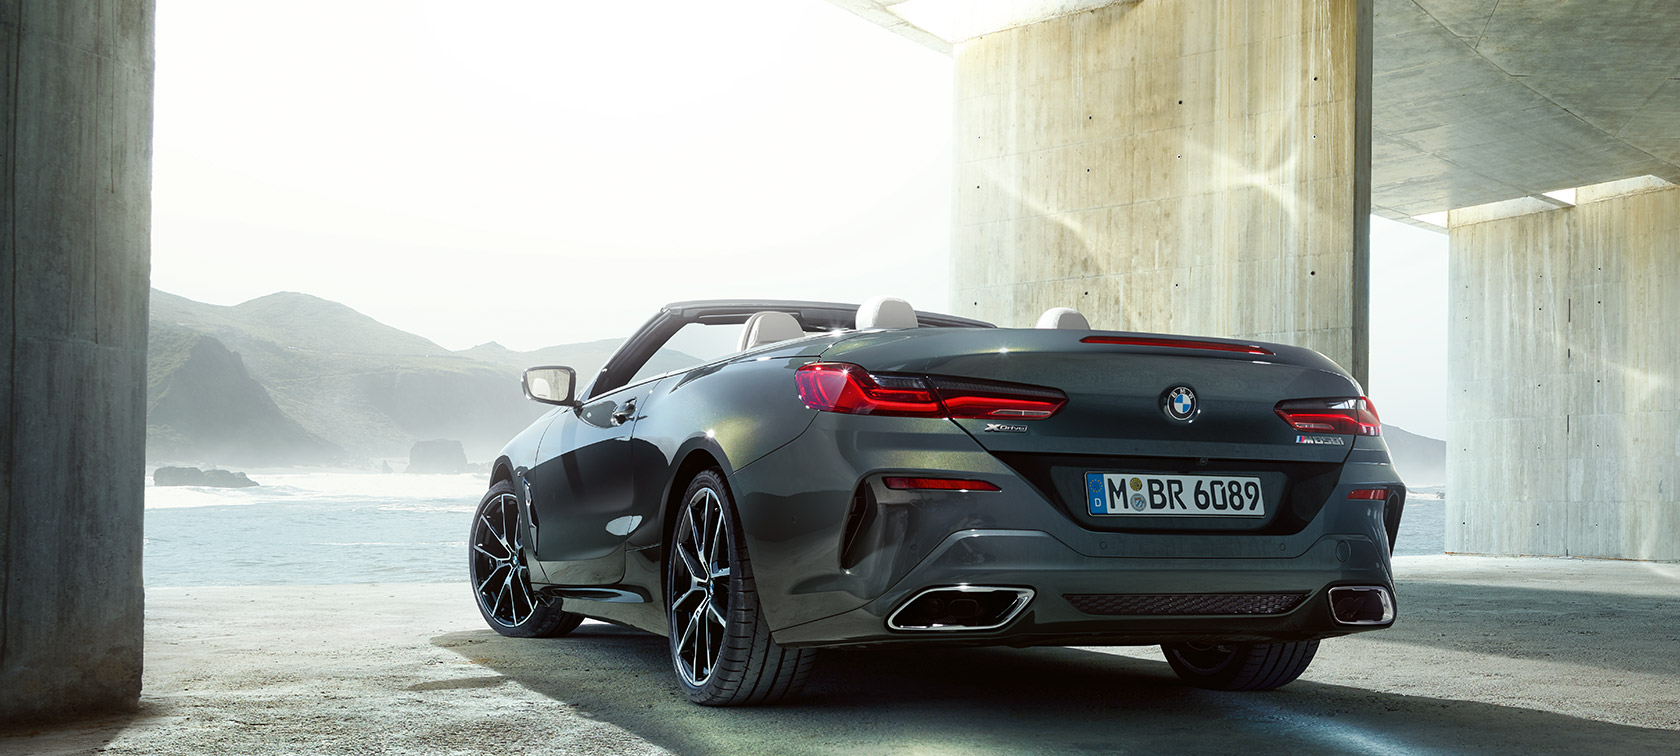 BMW M850i xDrive Dravit Grey metallic, three-quarter view from rear left.